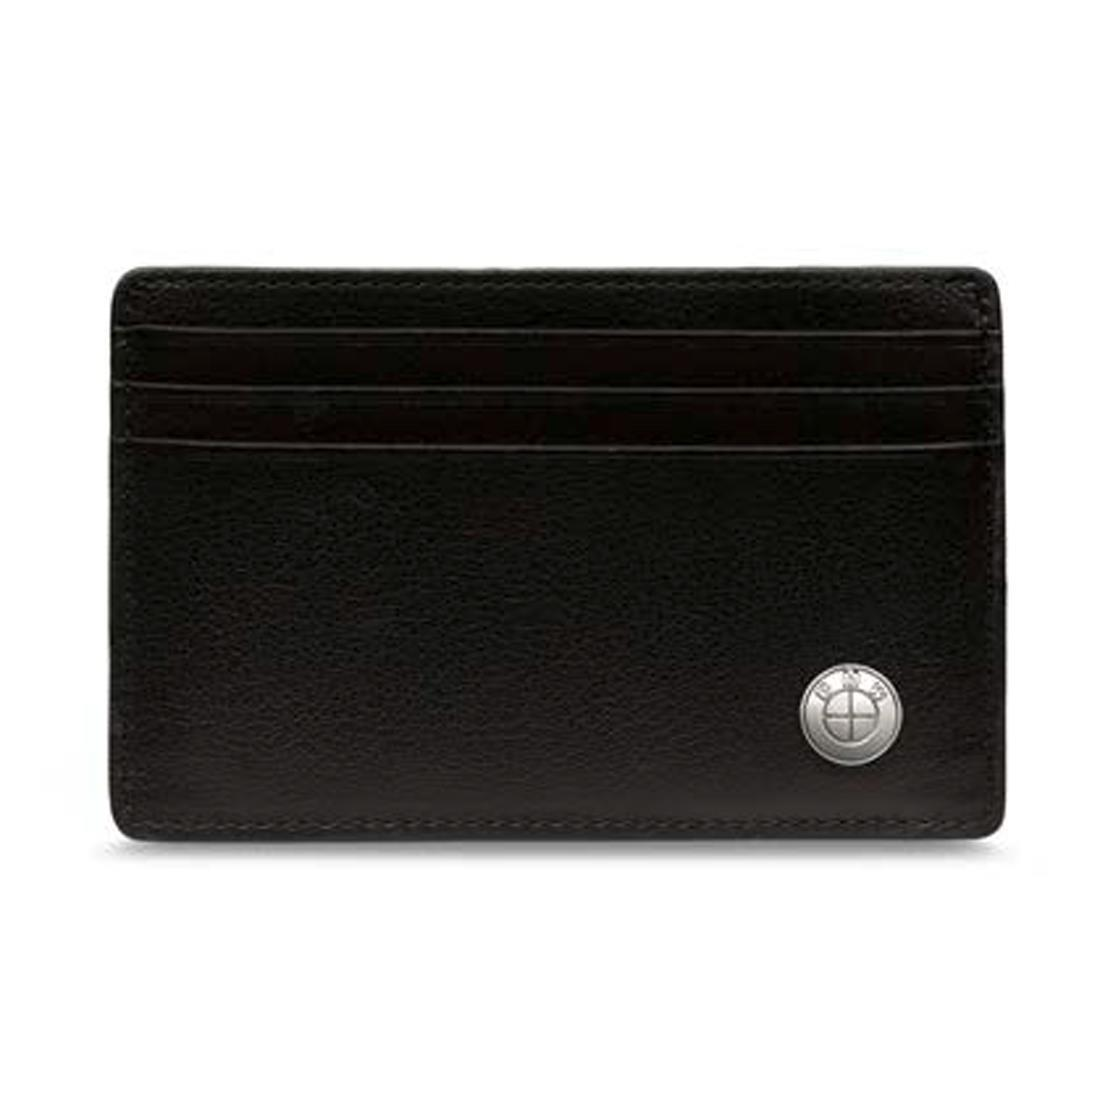 BMW CREDIT CARD HOLDER